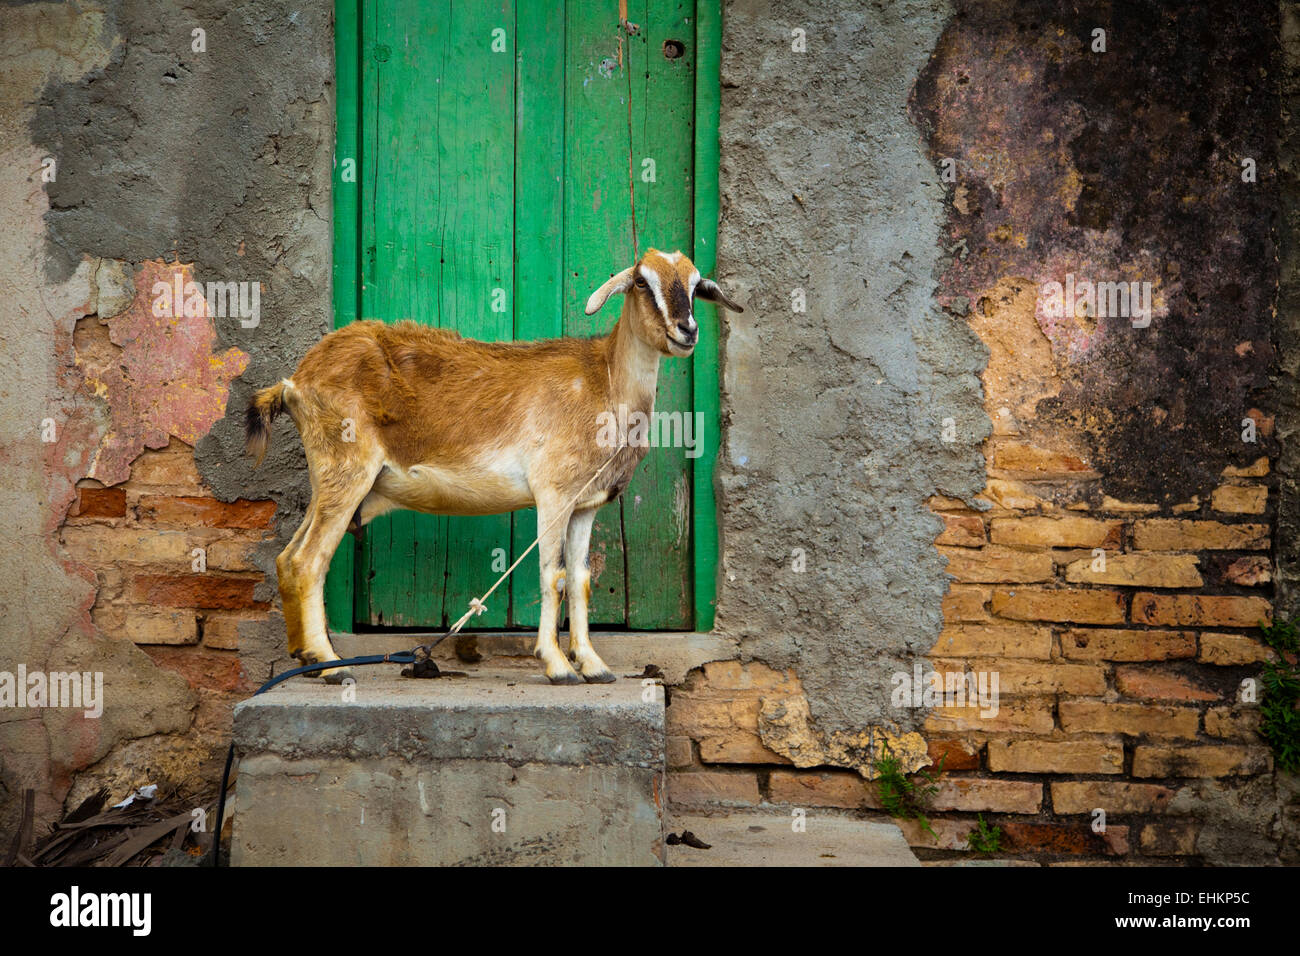 Pet goat chained up in Trinidad, Cuba - Stock Image